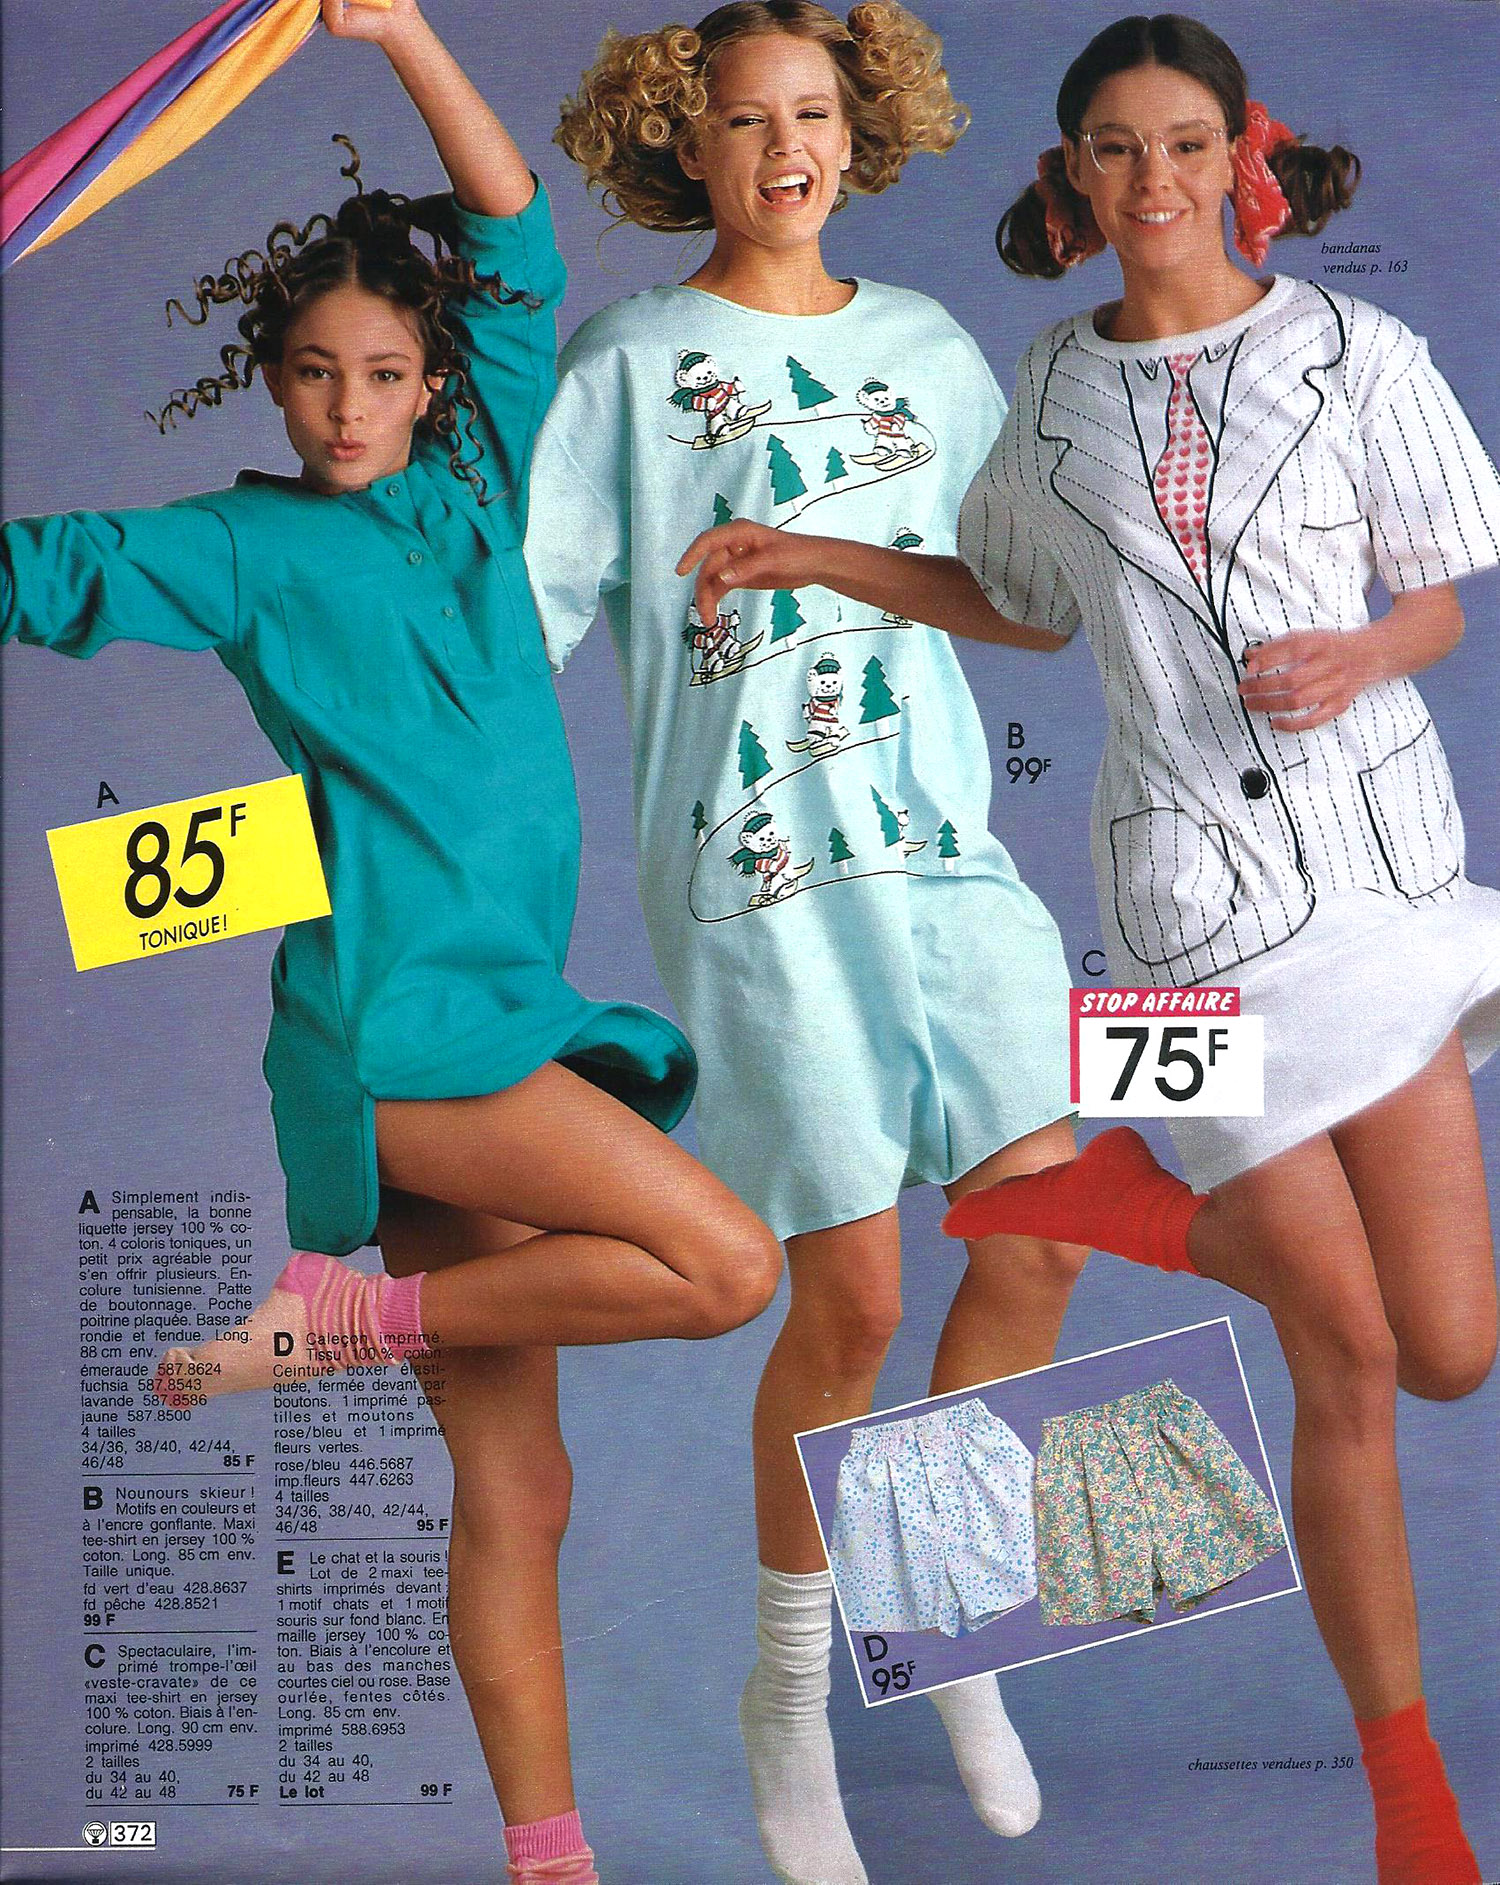 frilly nightgowns to garfield pajamas 1980s women 39 s. Black Bedroom Furniture Sets. Home Design Ideas